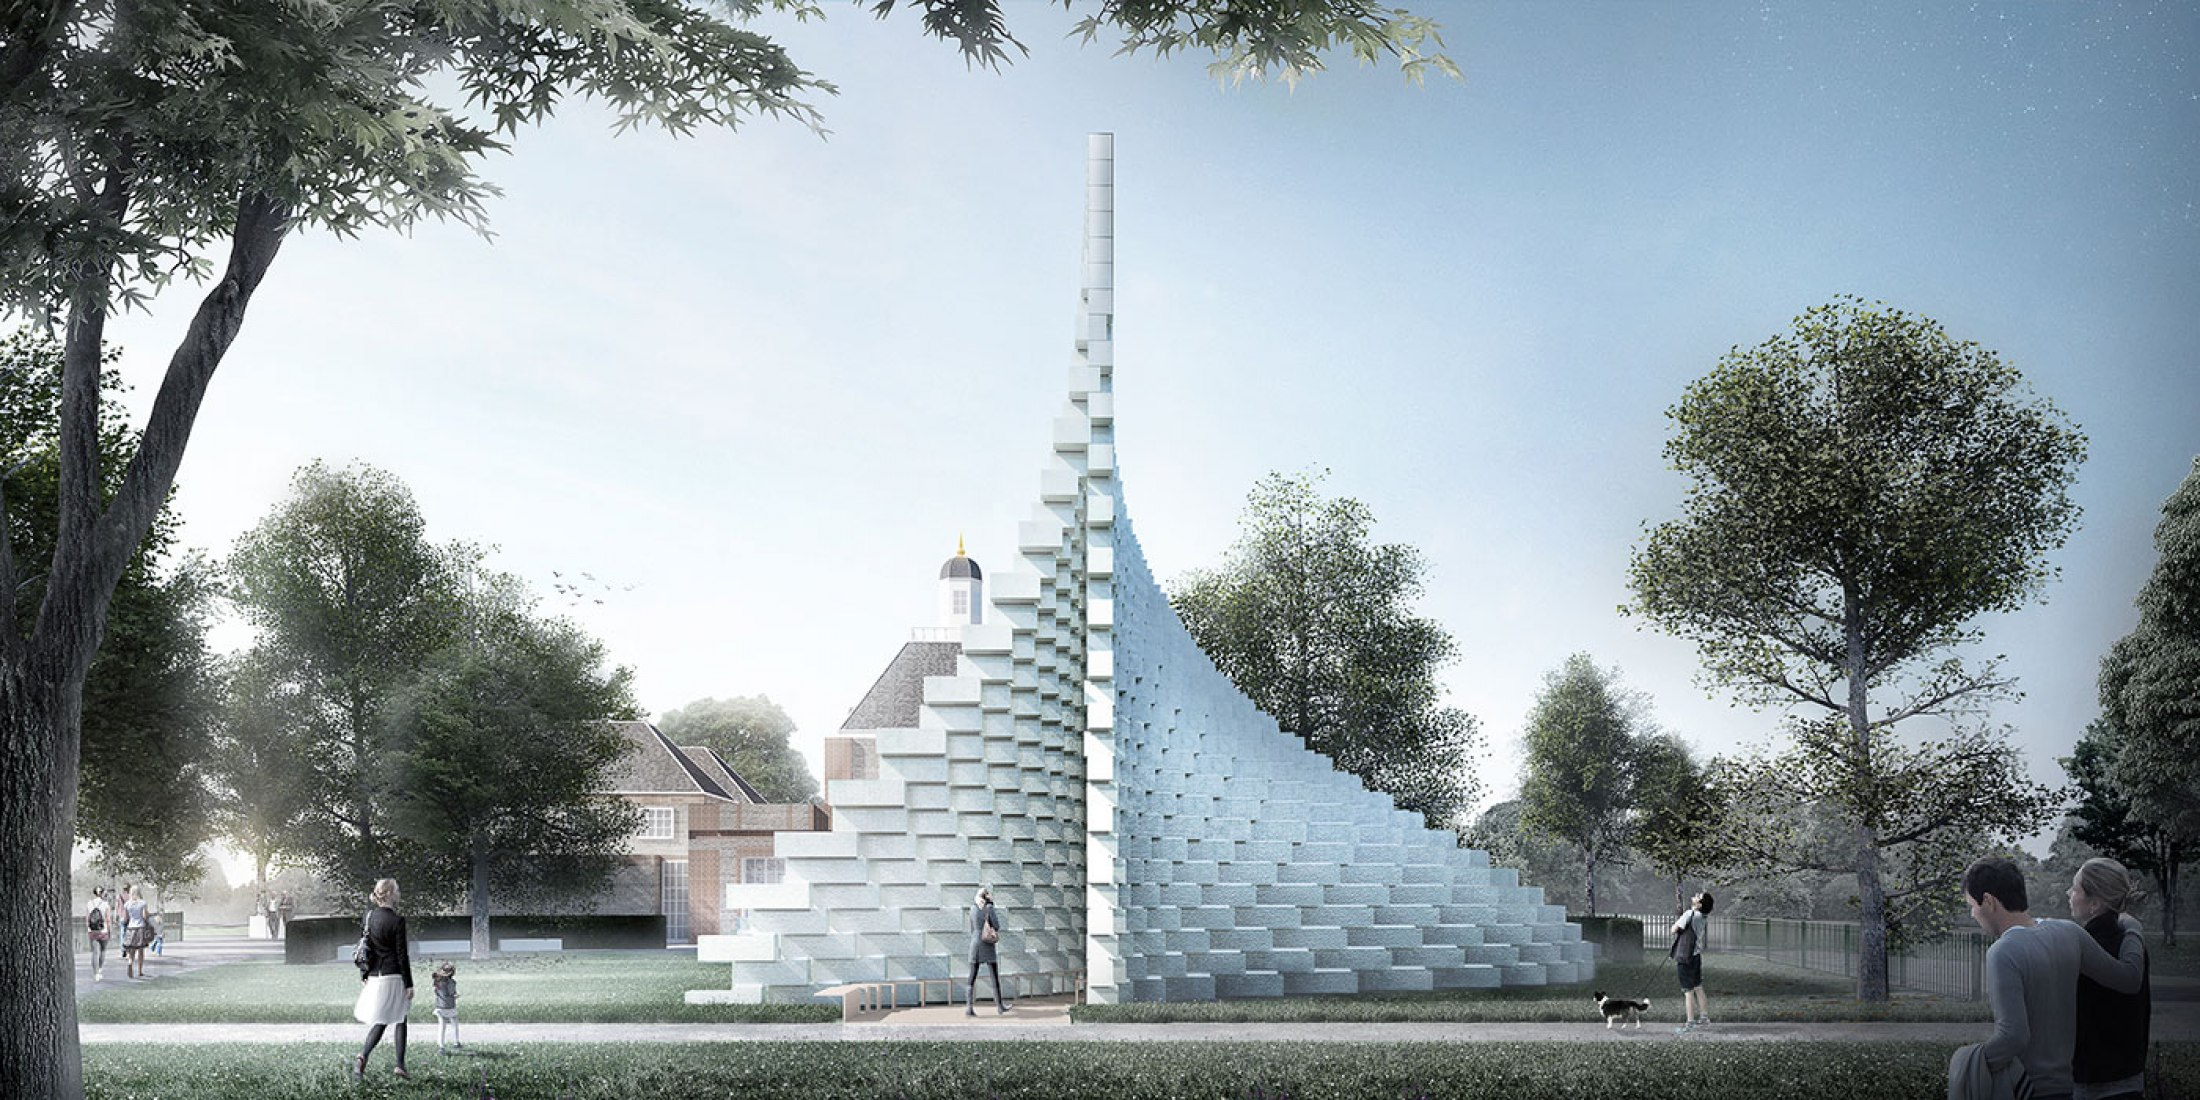 Render. Serpentine Pavilion 2016 by Bjarke Ingels Group (BIG). Image © Bjarke Ingels Group (BIG).